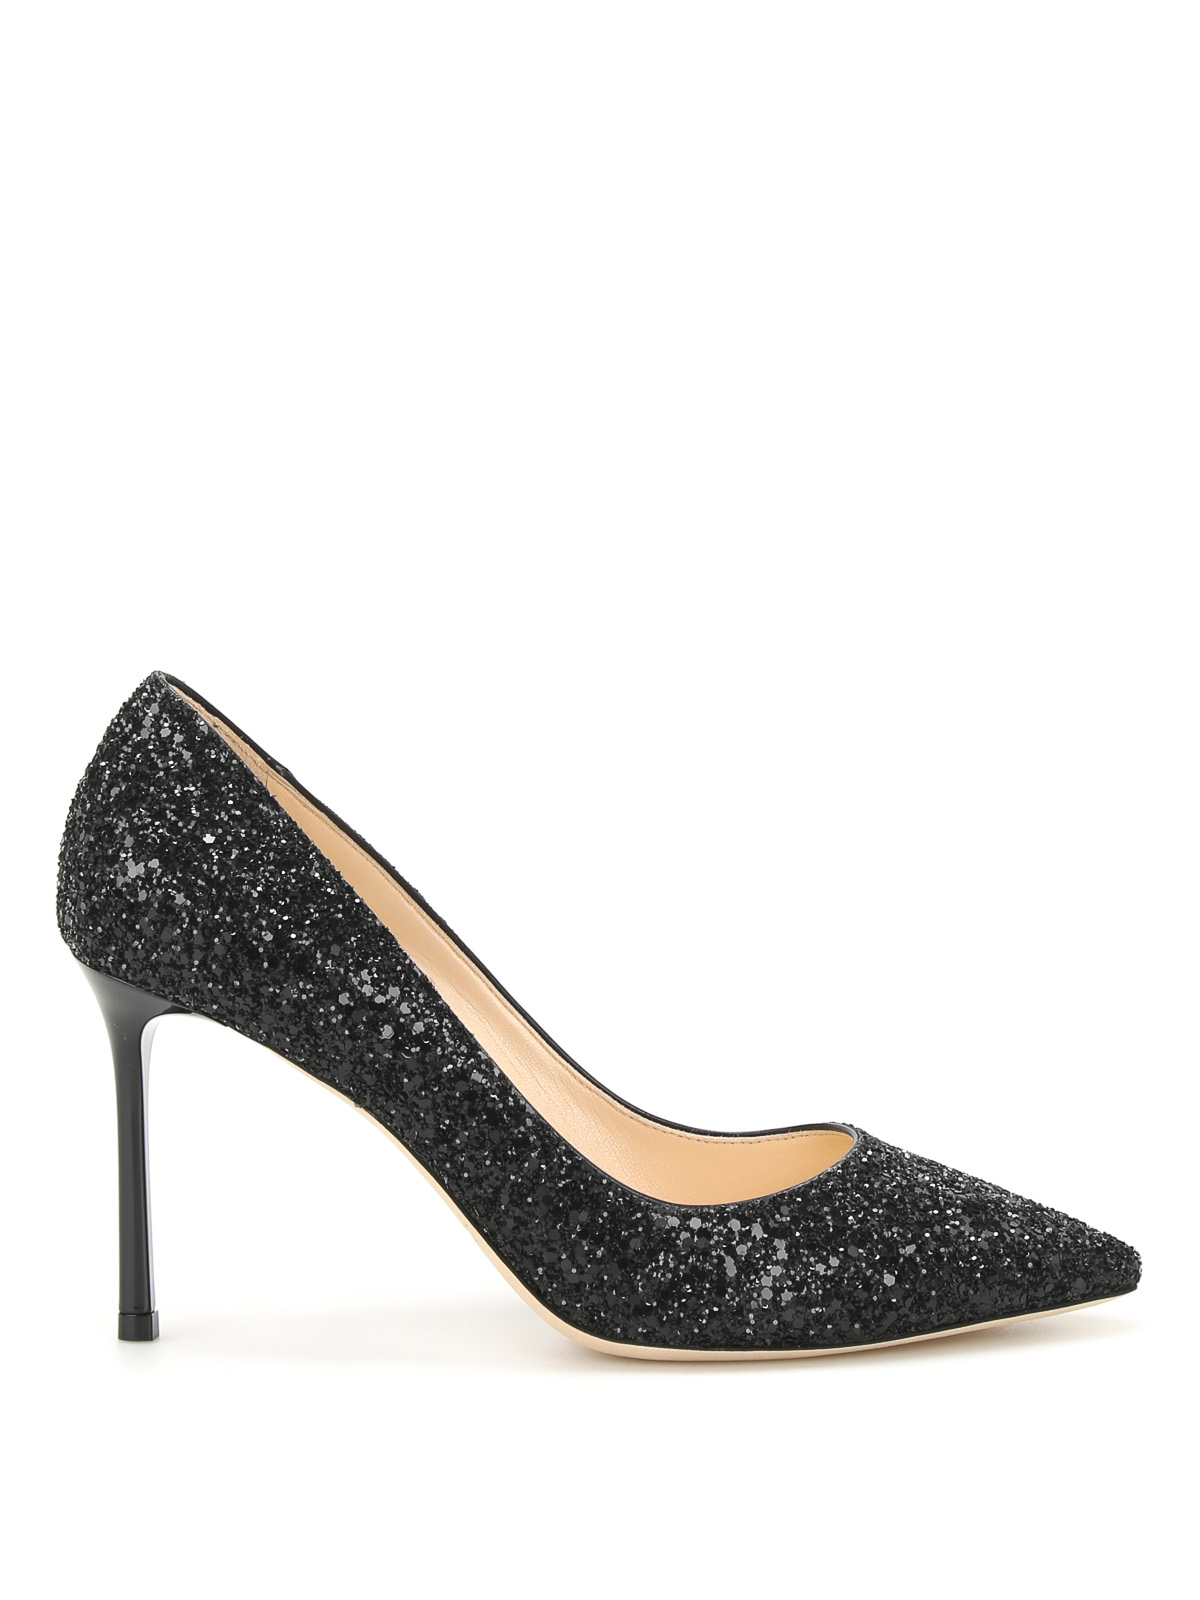 Jimmy choo shoes online shopping india